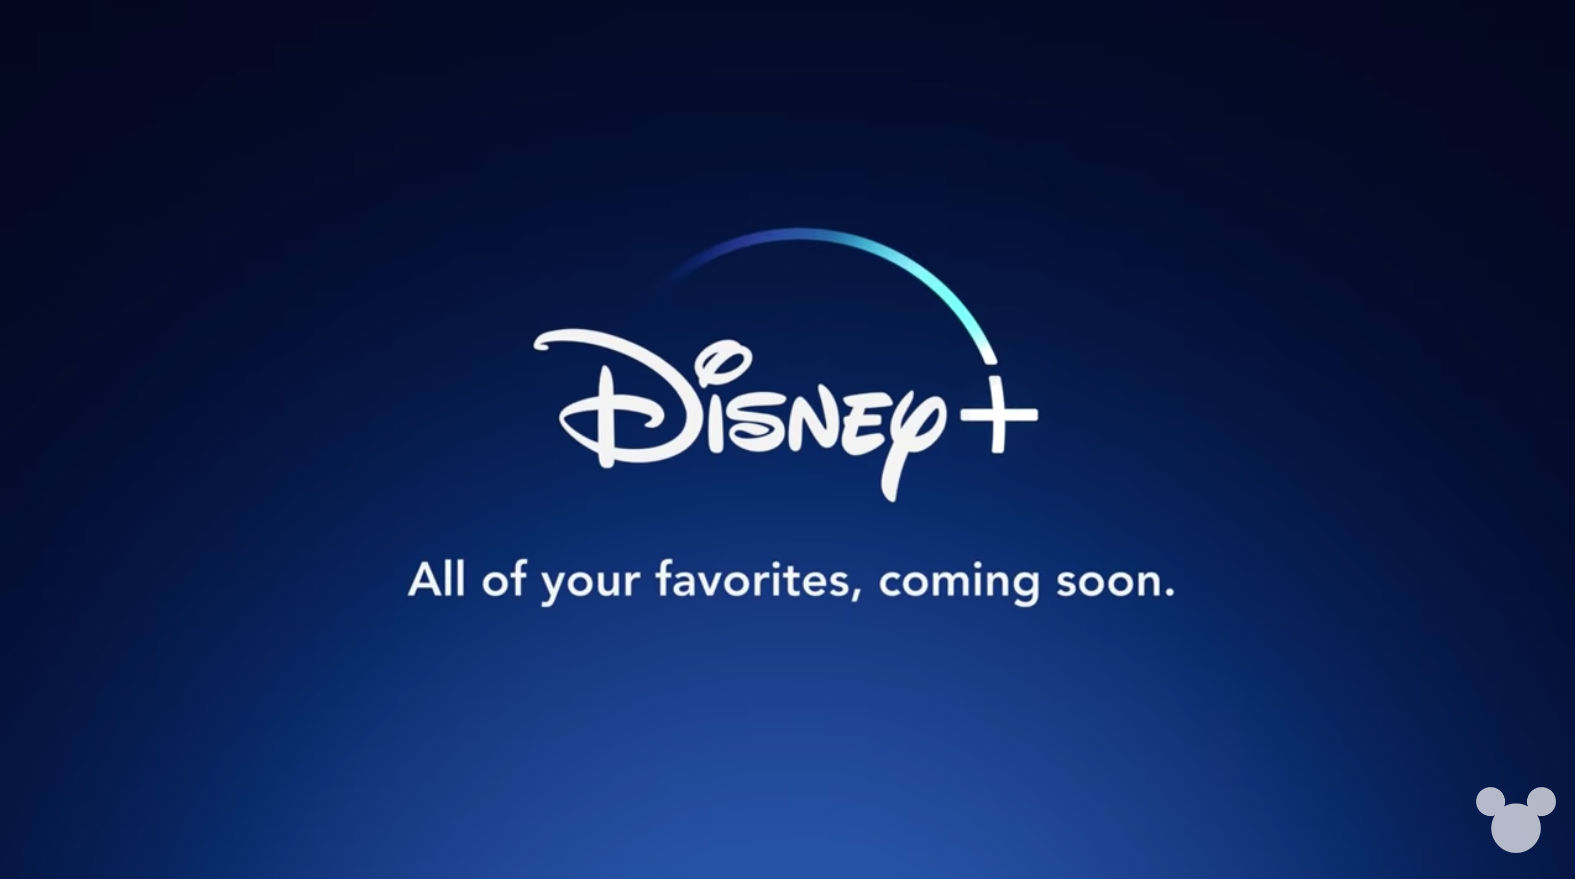 Photo of Disney+ logo